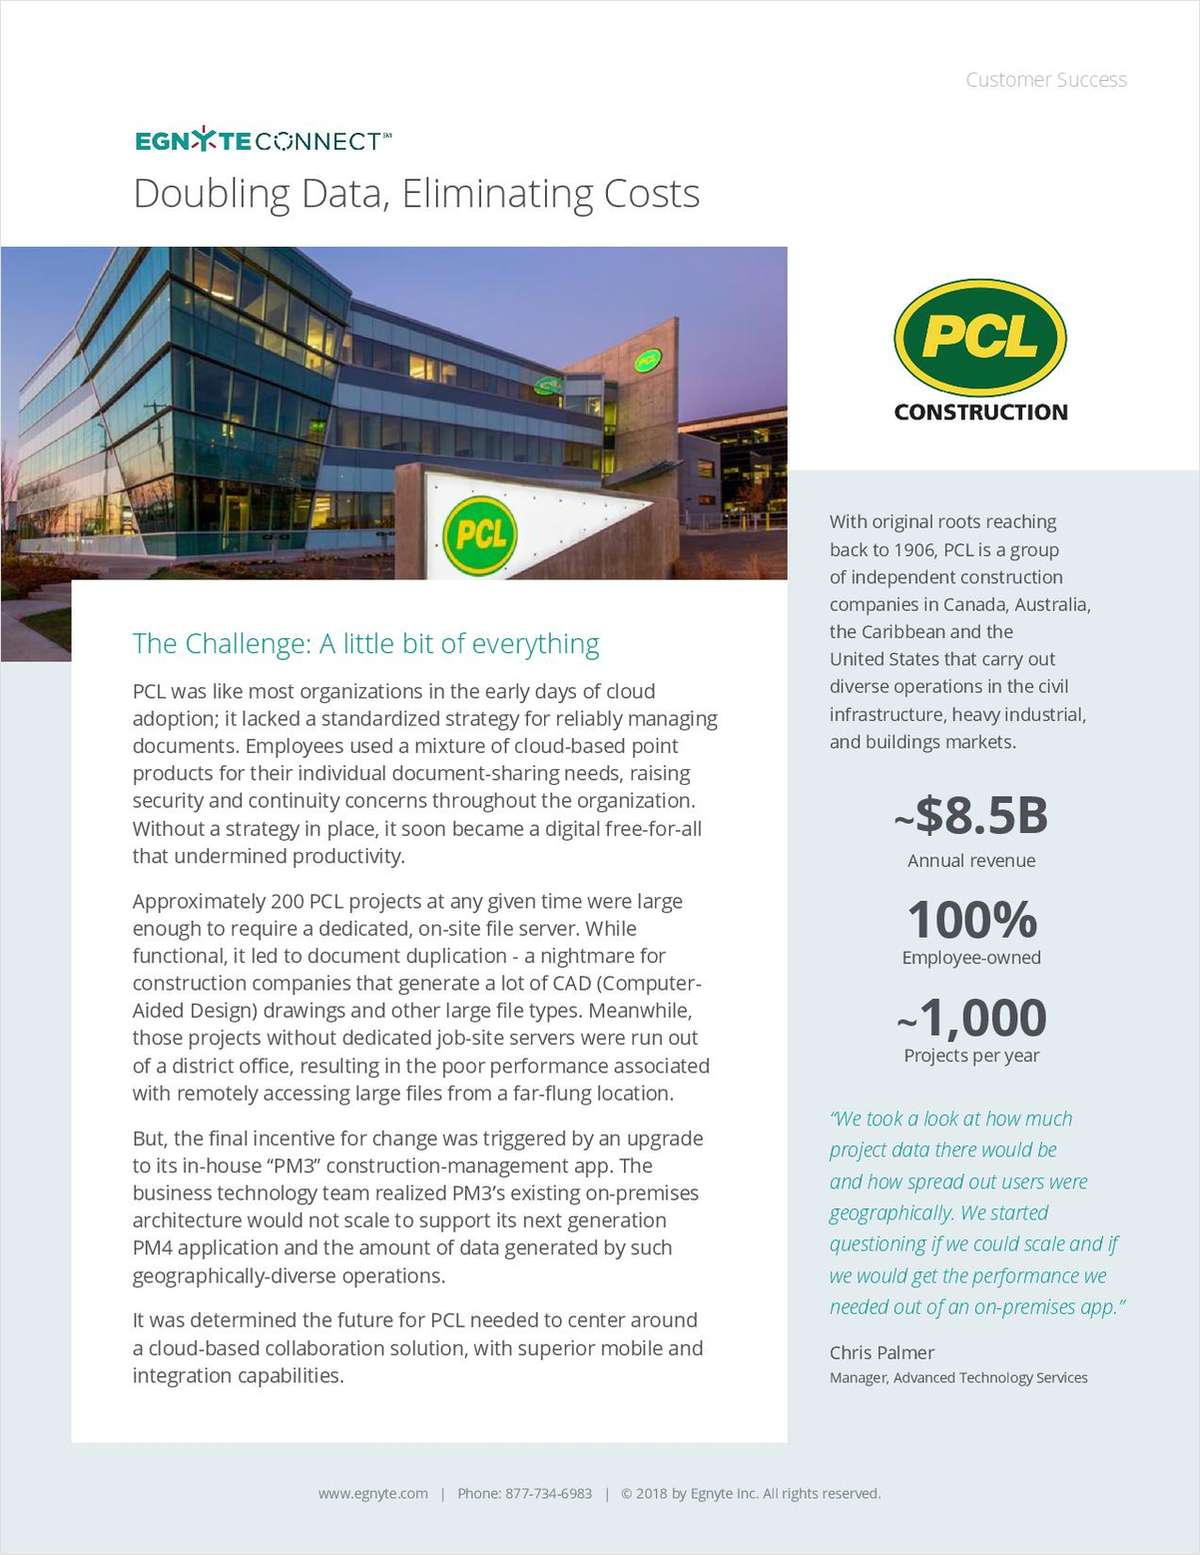 Doubling Data, Eliminating Costs